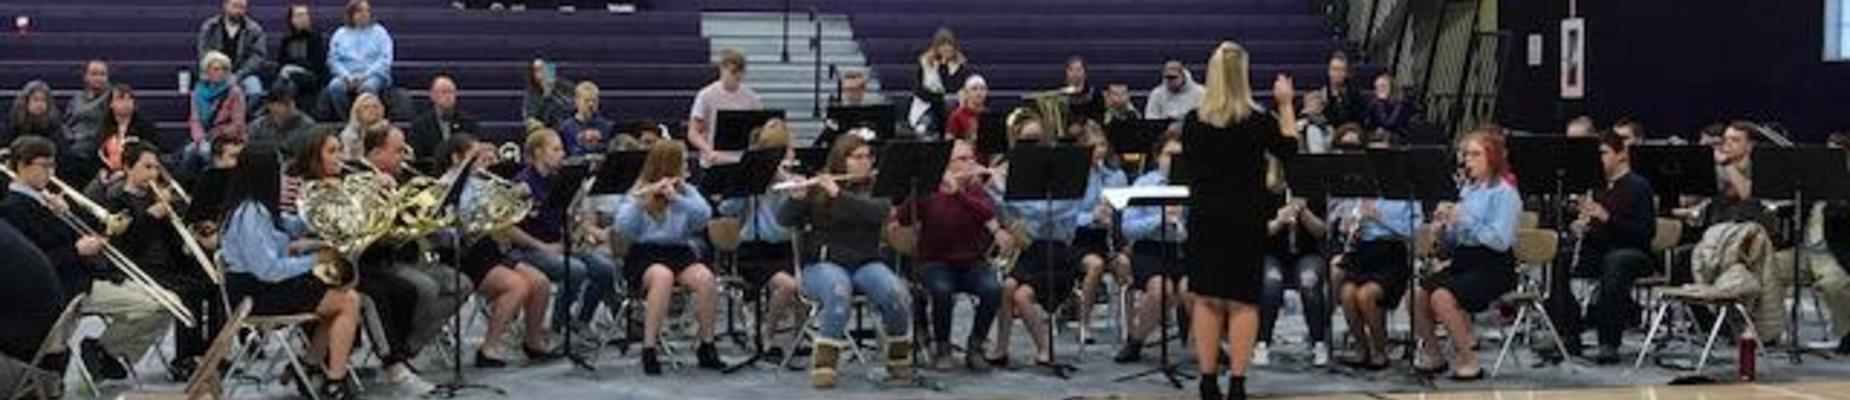 Veterans Day Band performance